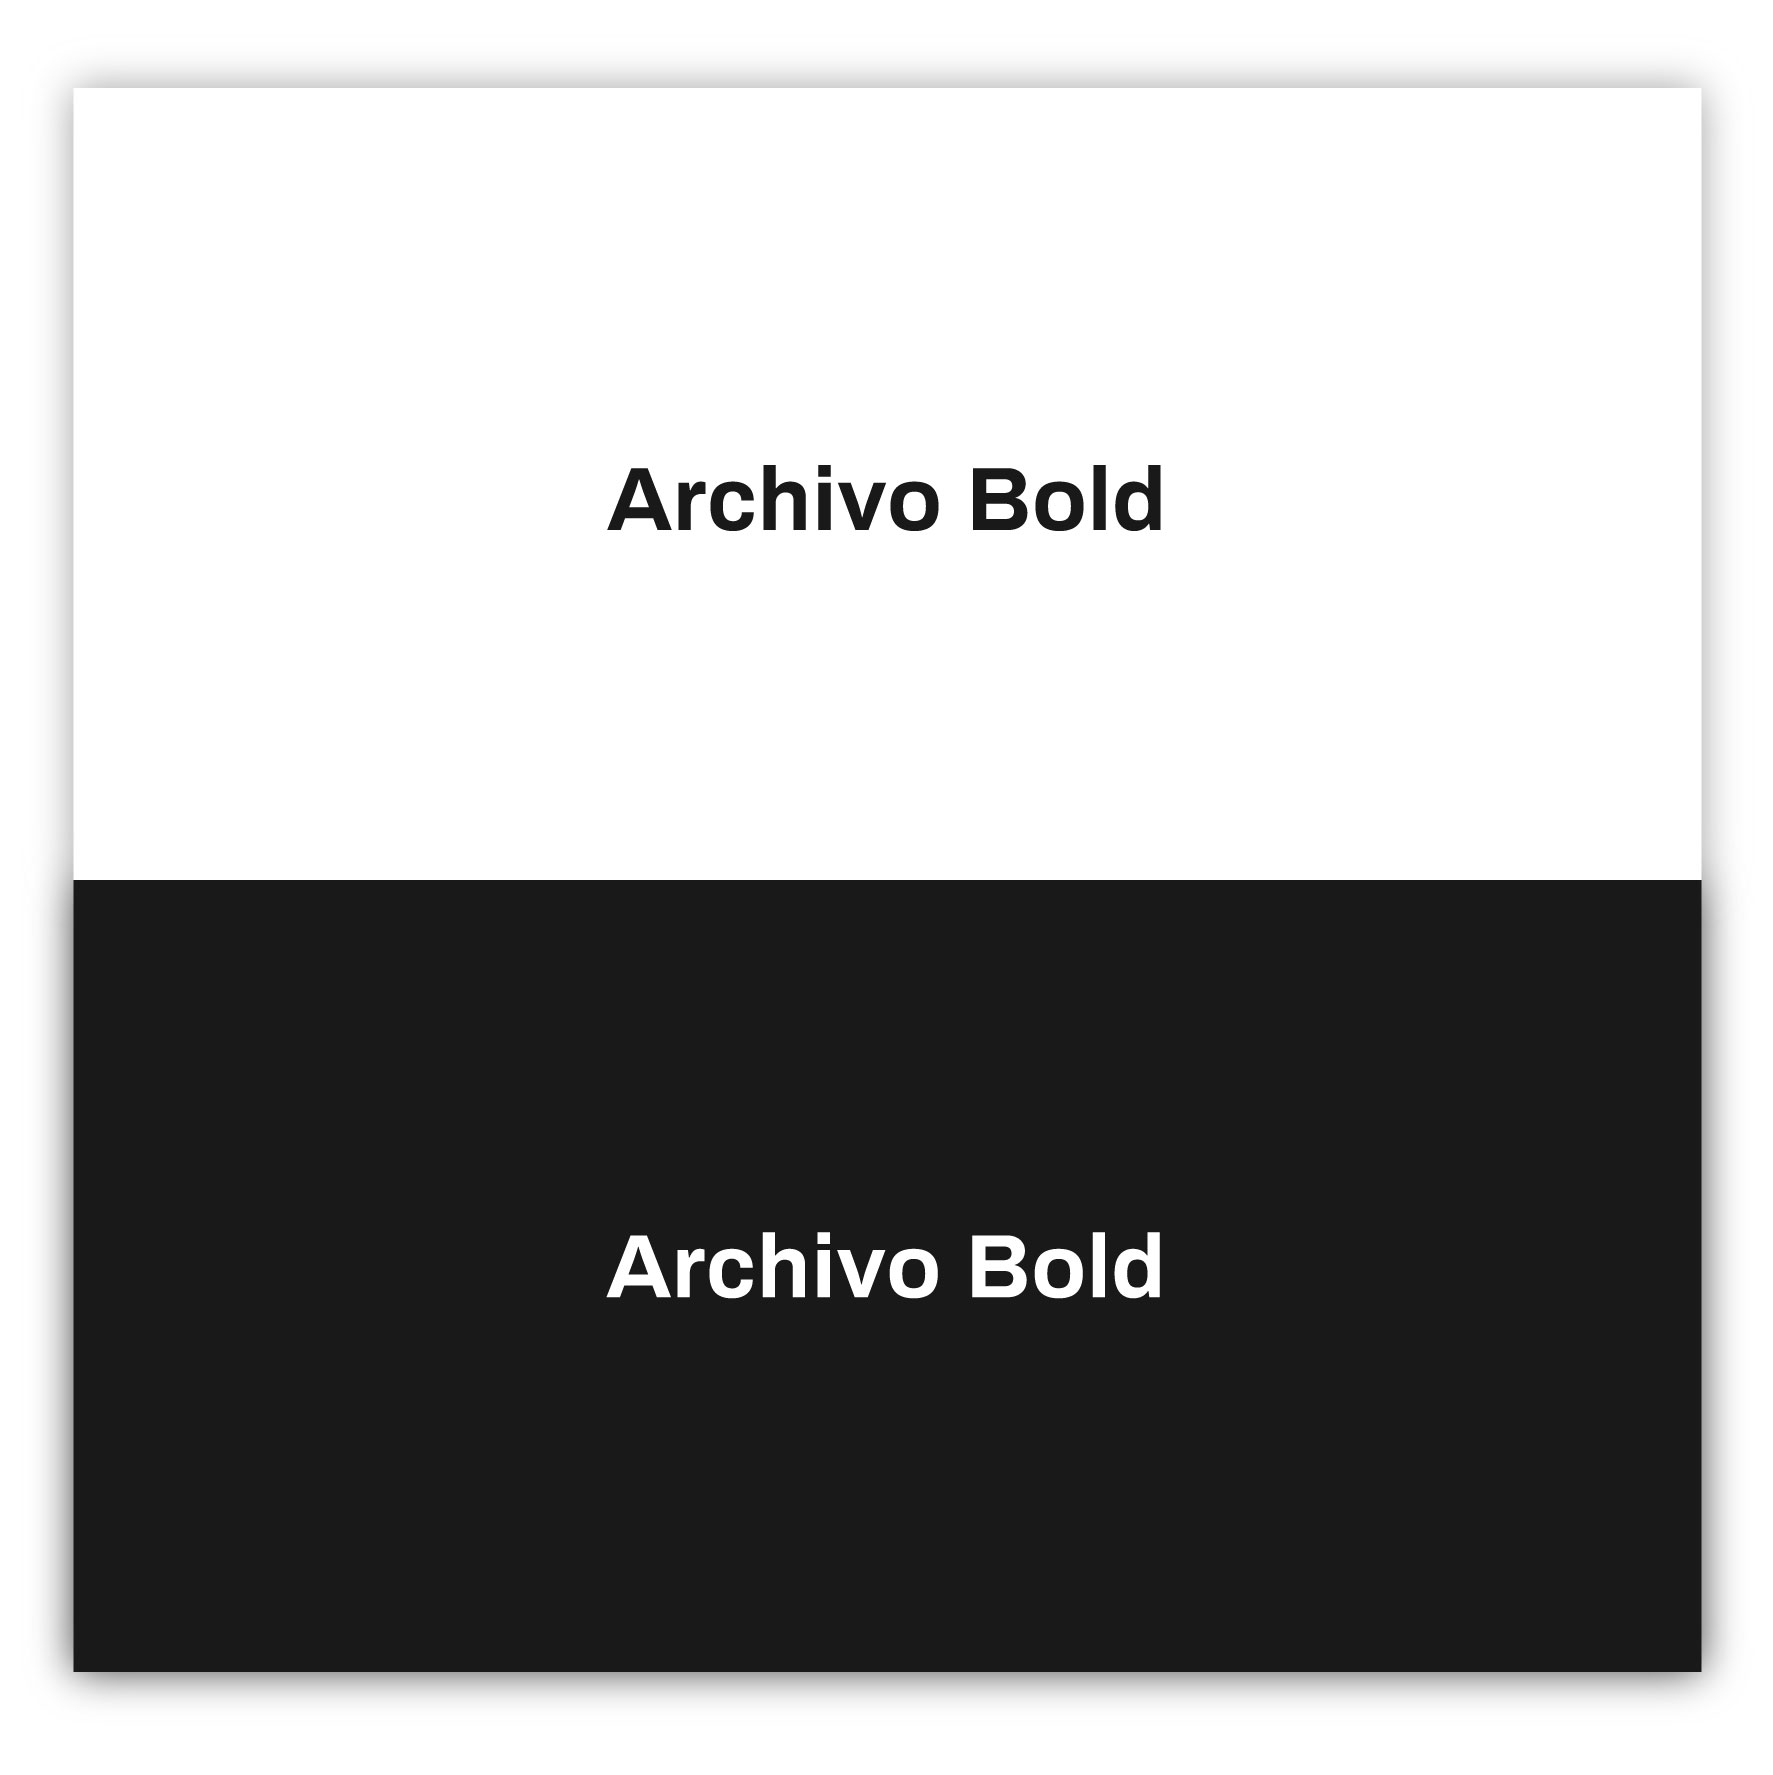 Archivo Bold - 2021 Fonts Best Design in Graphic and Web Design